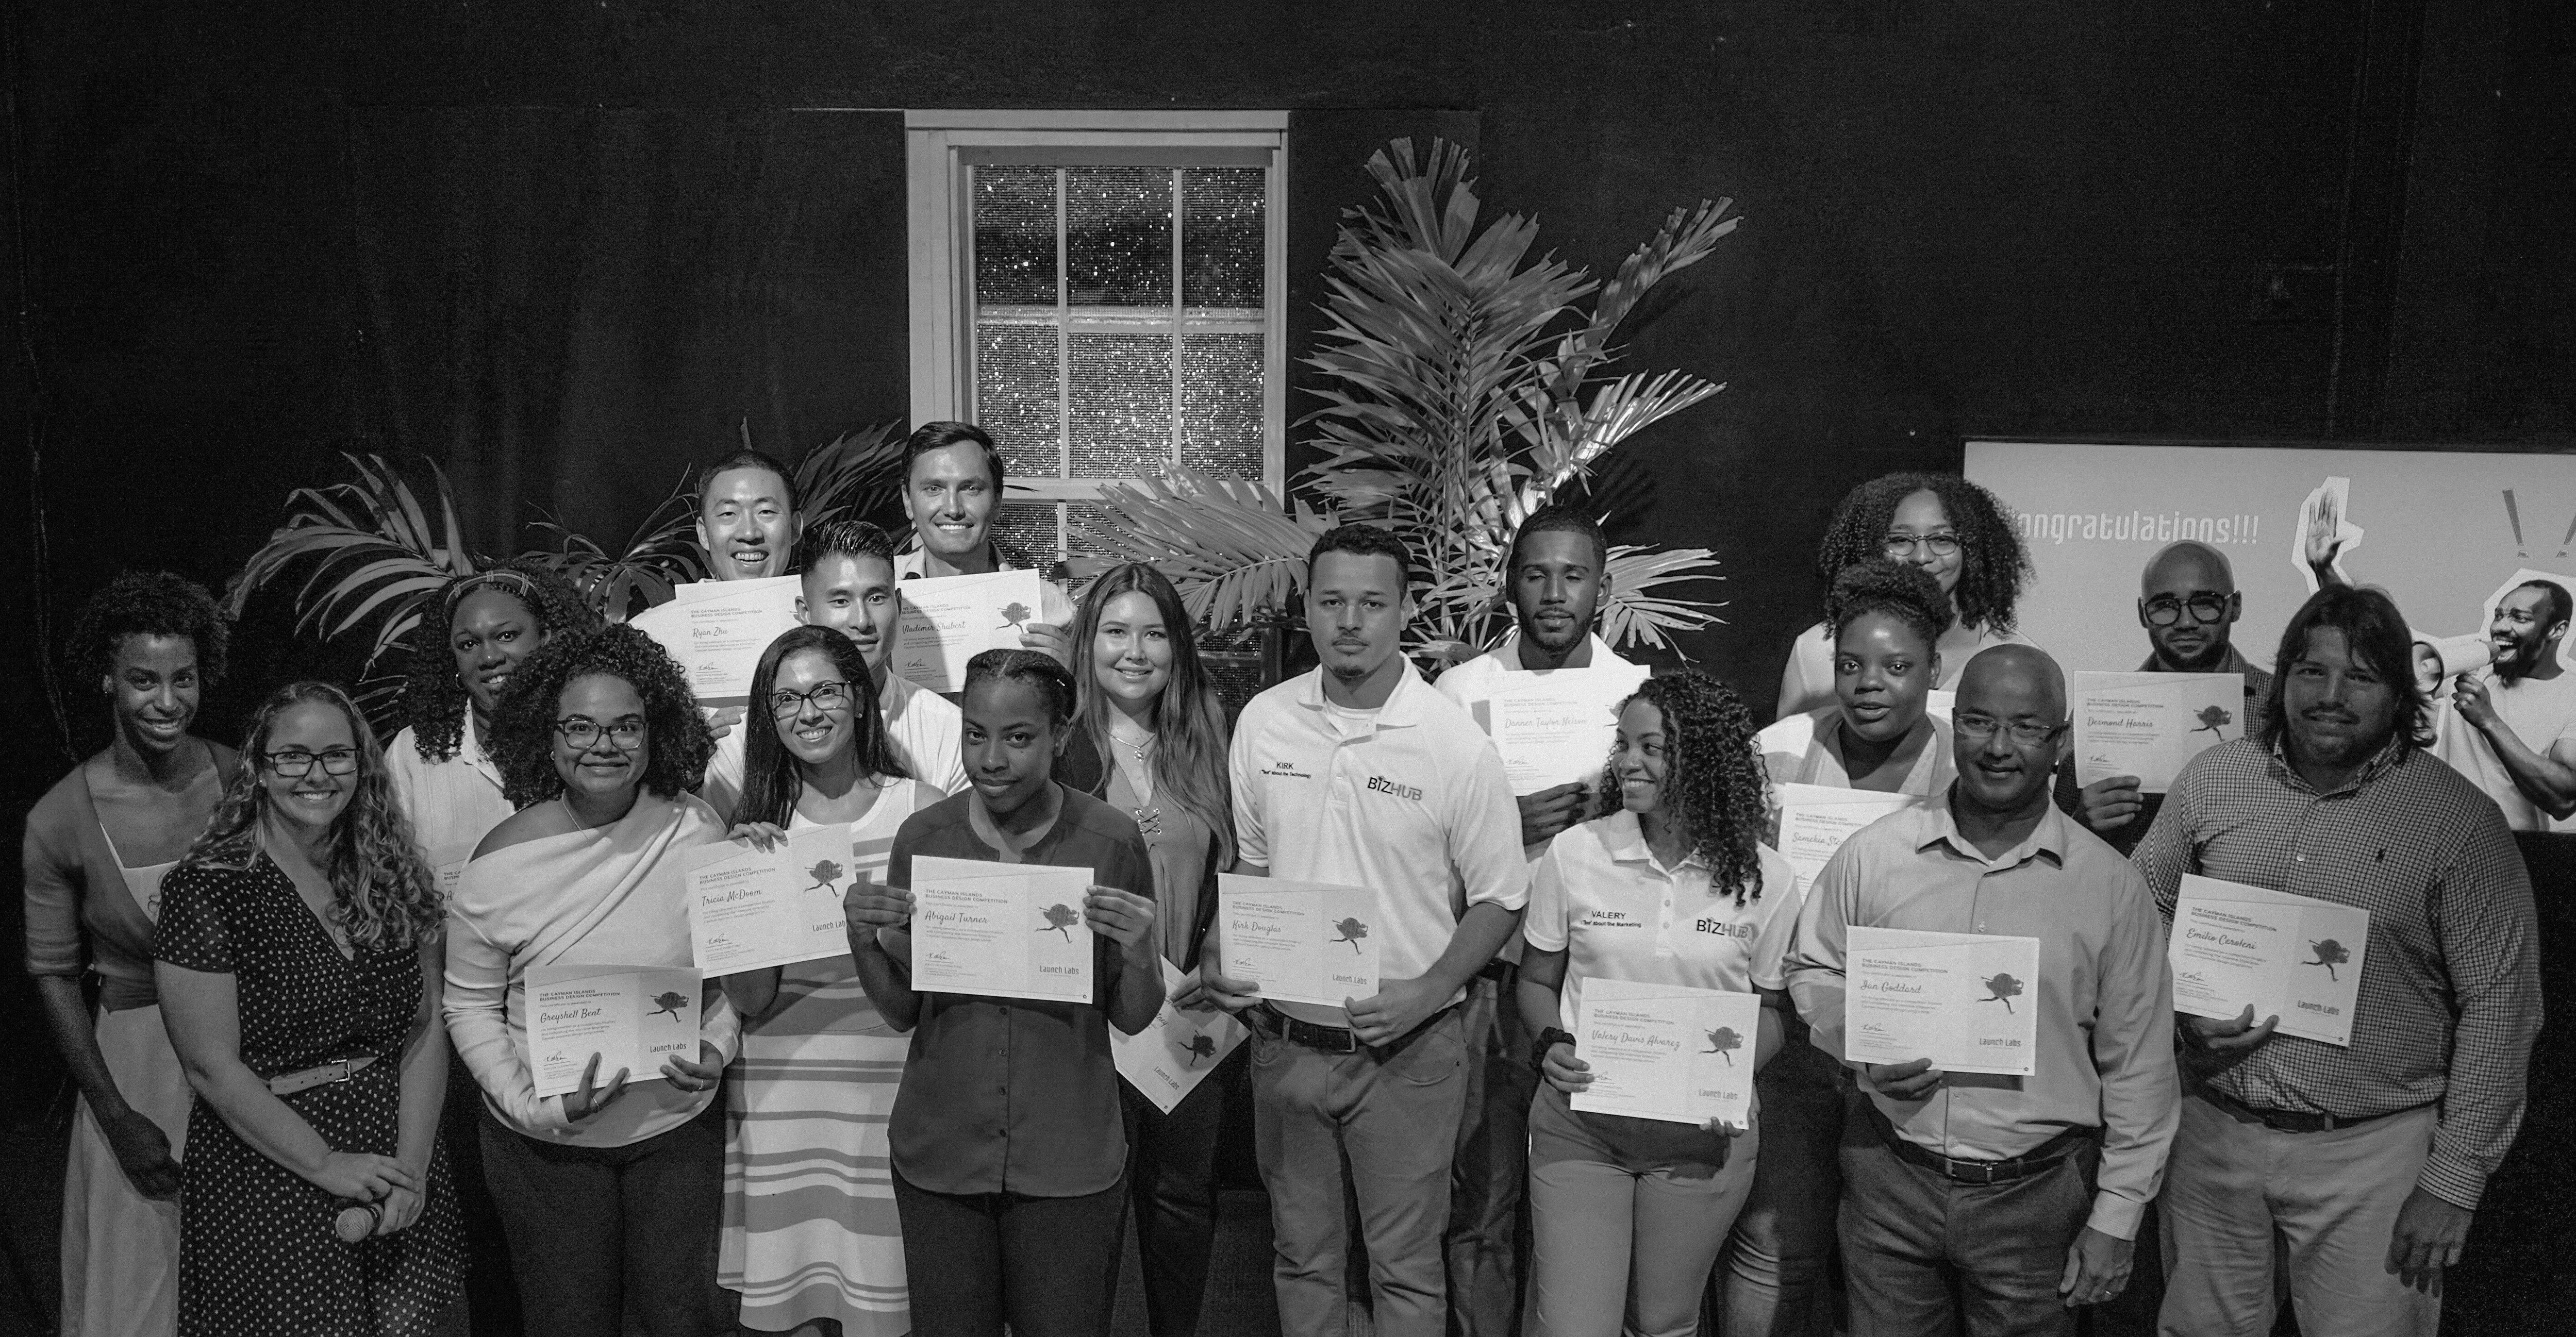 Cayman Islands Business Design Competition Group Shot